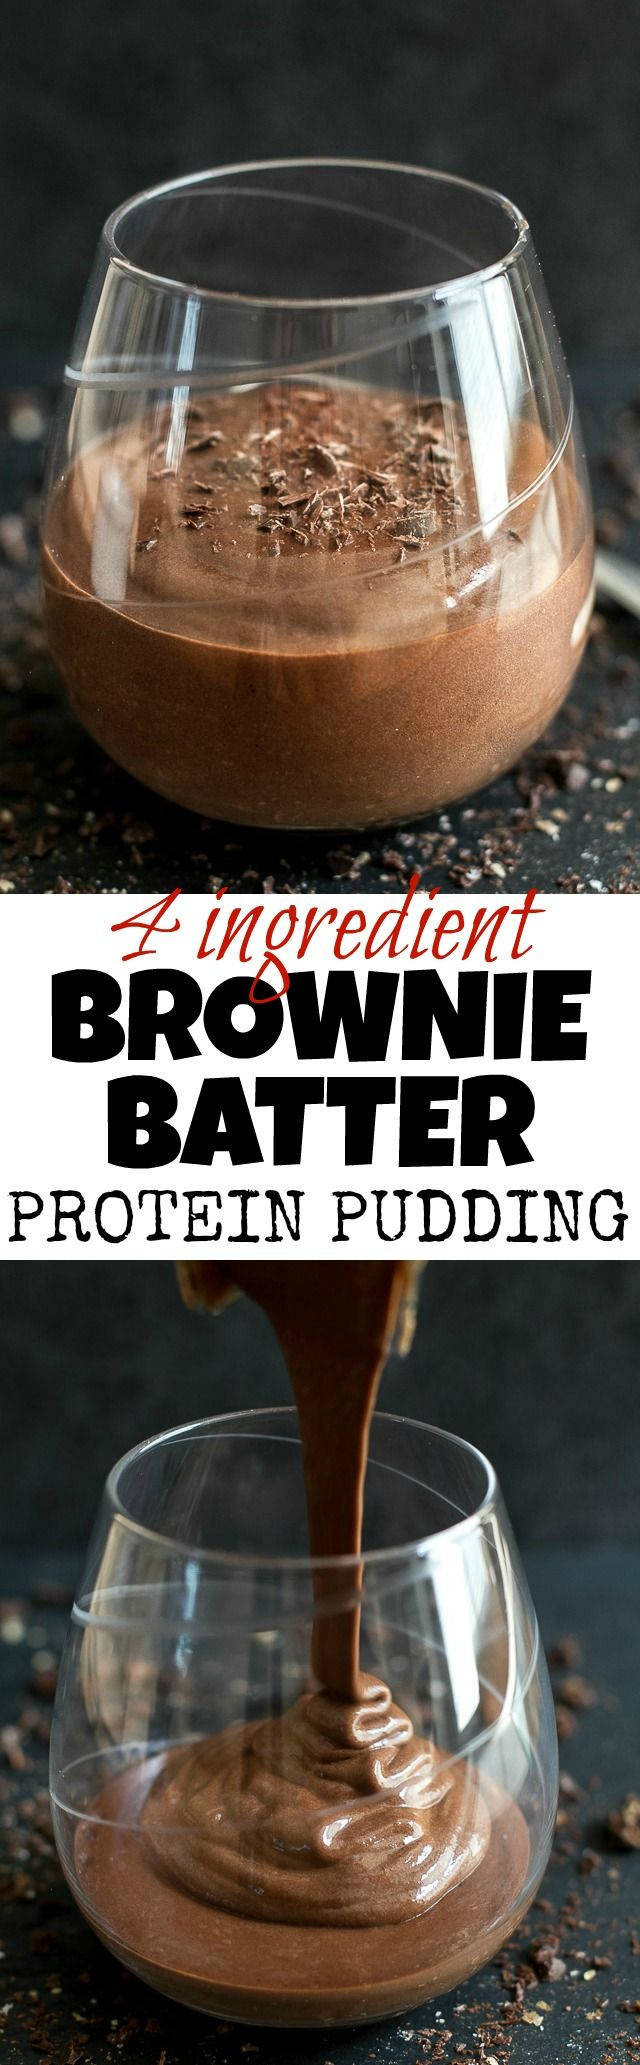 Brownie Batter Protein Pudding - high in protein and packed with a rich chocolate flavour, this addictively DELICIOUS recipe requires only 4 ingredients and 5 minutes to make! | runningwithspoons.com @PlantFusion #vegan #glutenfree #healthy